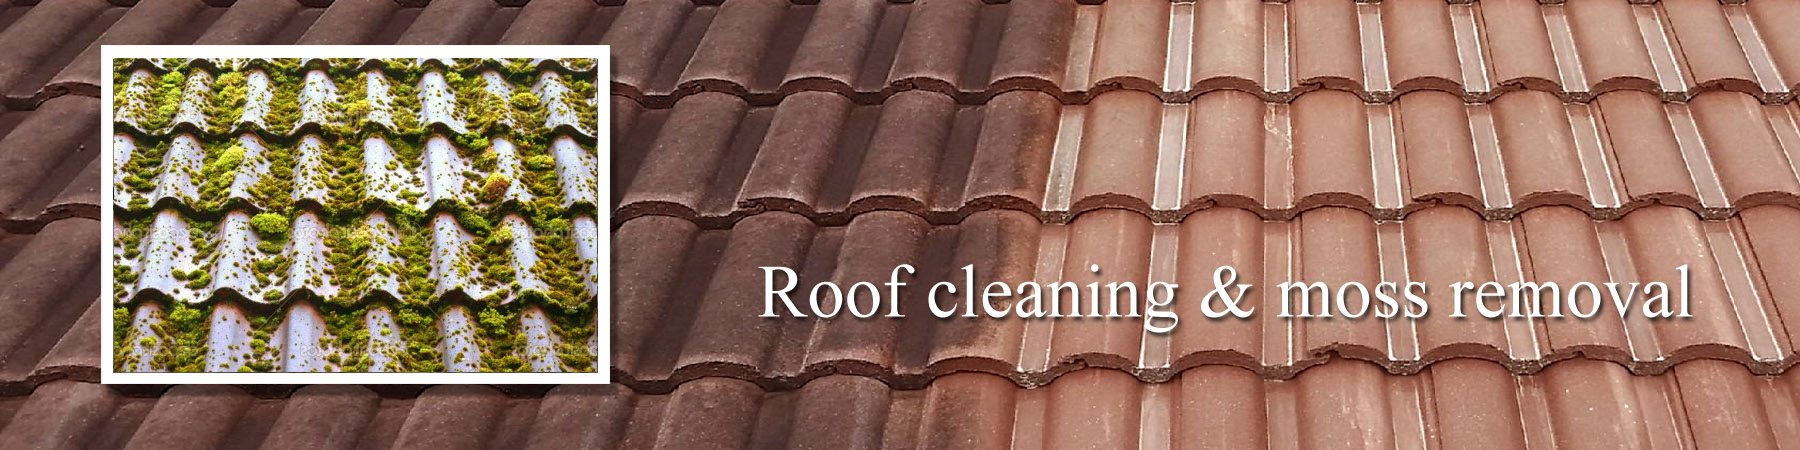 J.R. Roof Cleaning Tunbridge Wells roof moss removal repairs & coating J R Cleaning